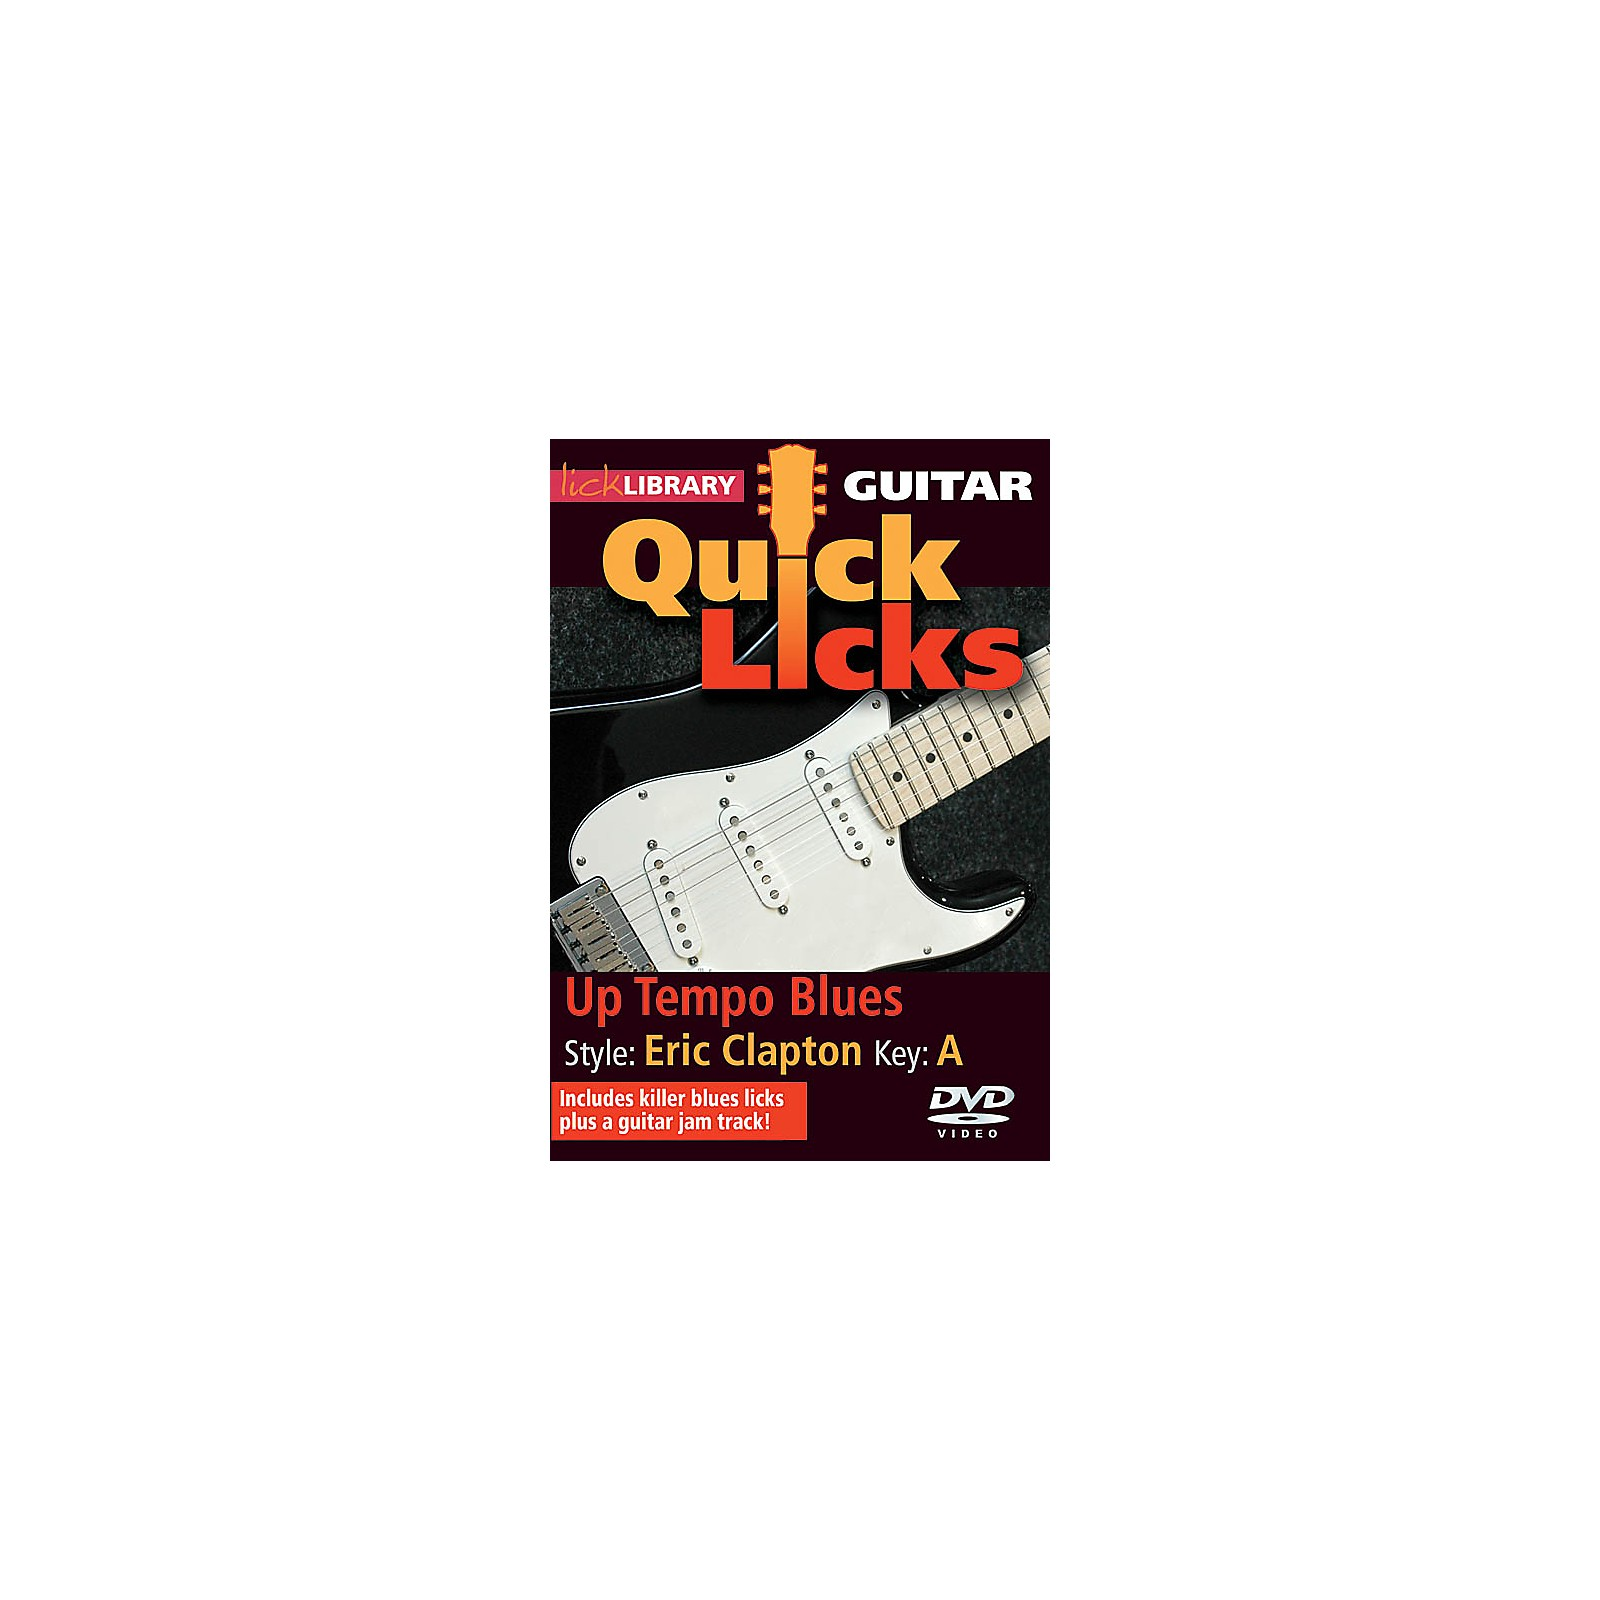 Licklibrary Up Tempo Blues - Quick Licks (Style: Eric Clapton; Key: A) Lick Library Series DVD by Michael Casswell